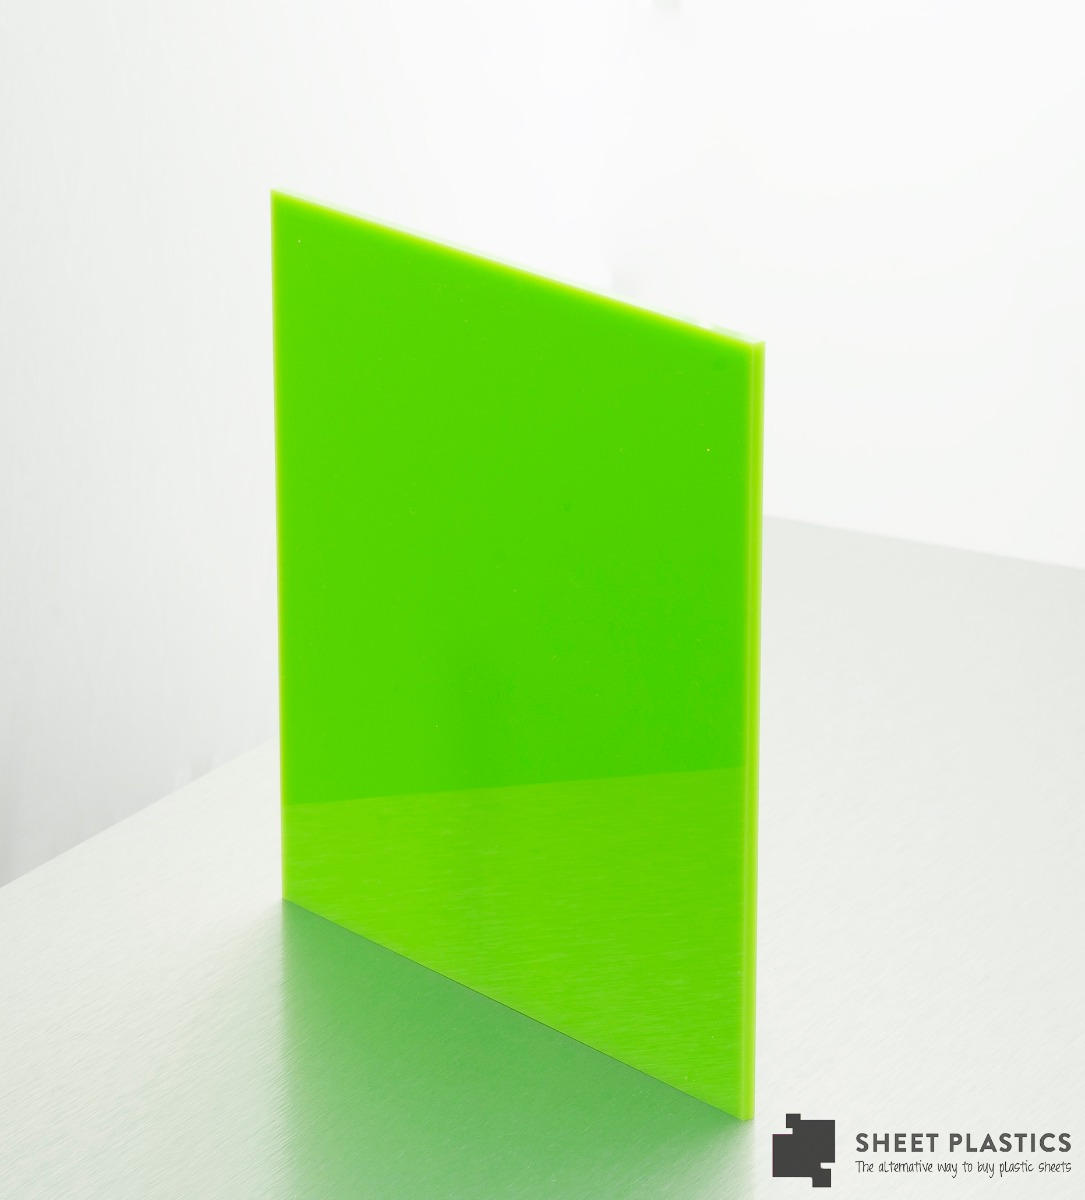 limegreen acrylic sheet 3217